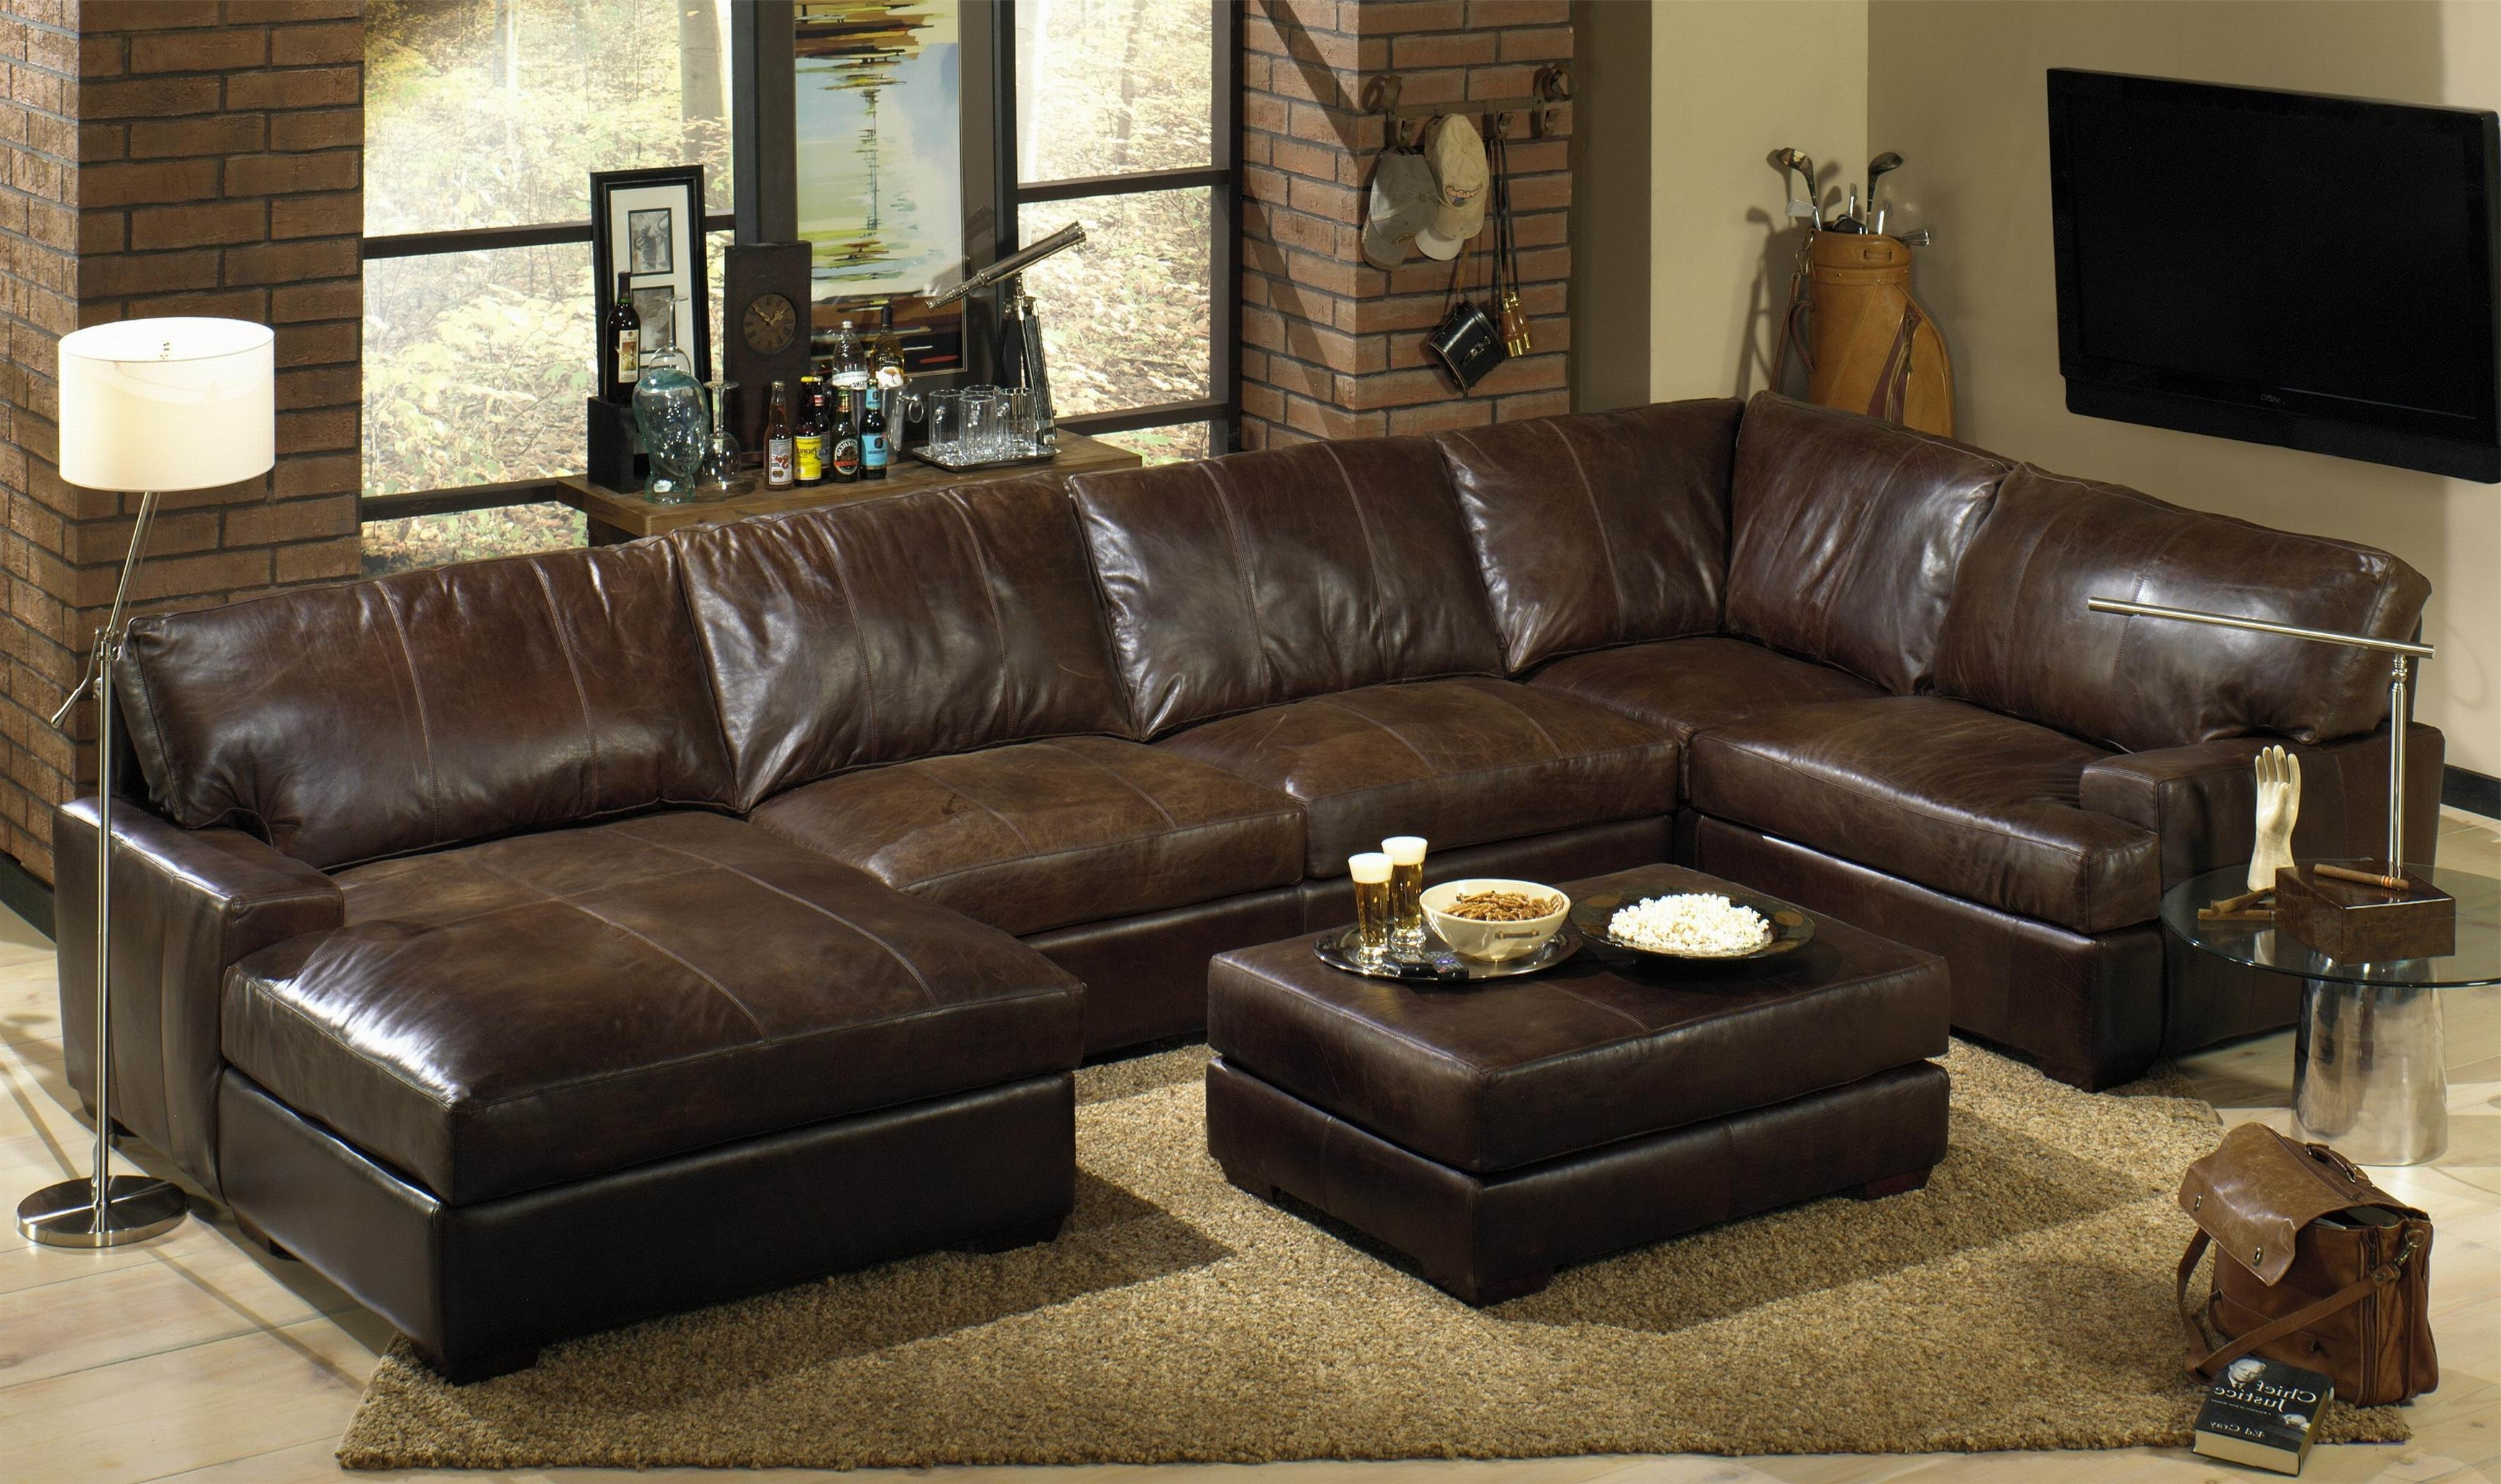 Rectangular Coffee Table With Glass Top Decor Rest Stoney Creek Within Famous Vaughan Sectional Sofas (View 2 of 20)